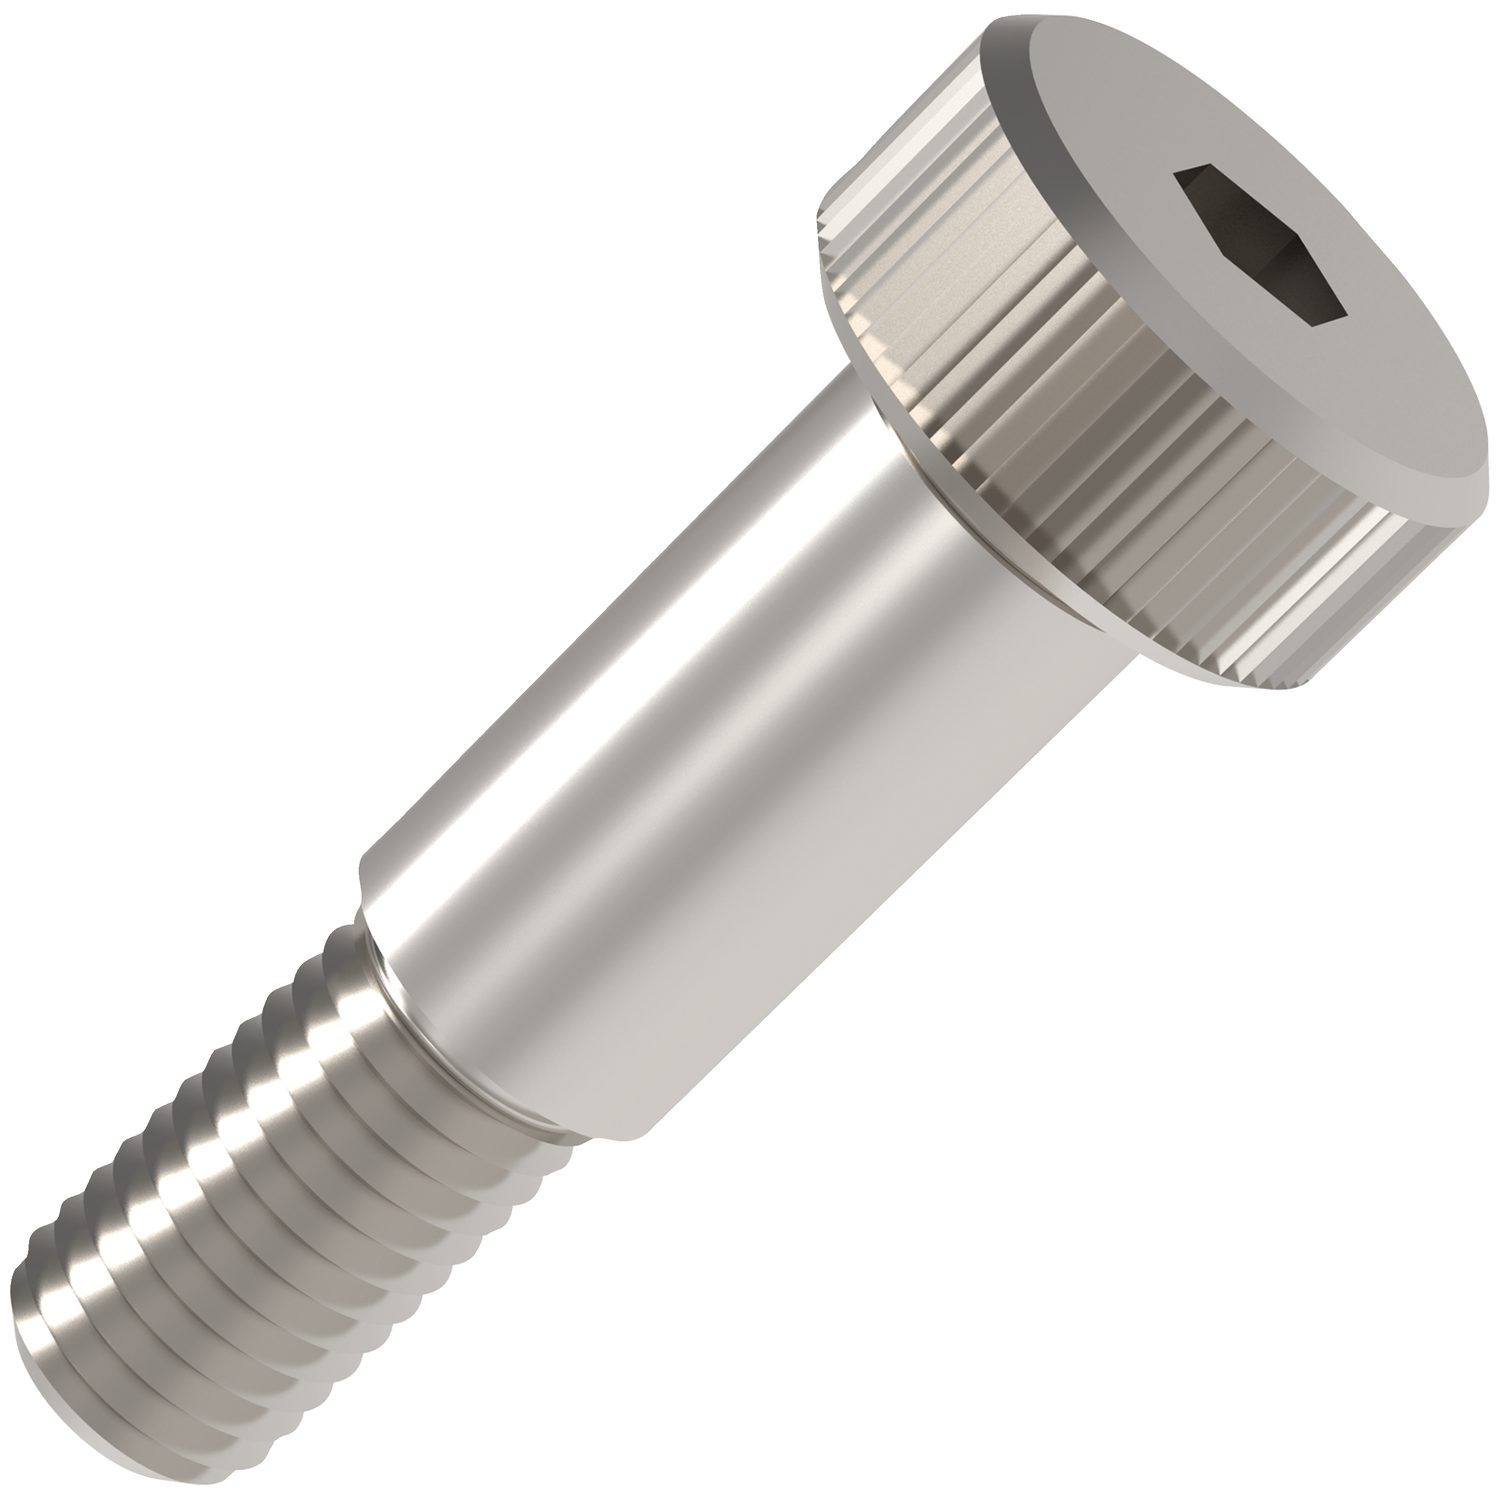 Product P0137, Shoulder Screws - Hex. Socket Head Large sizes A2 stainless /